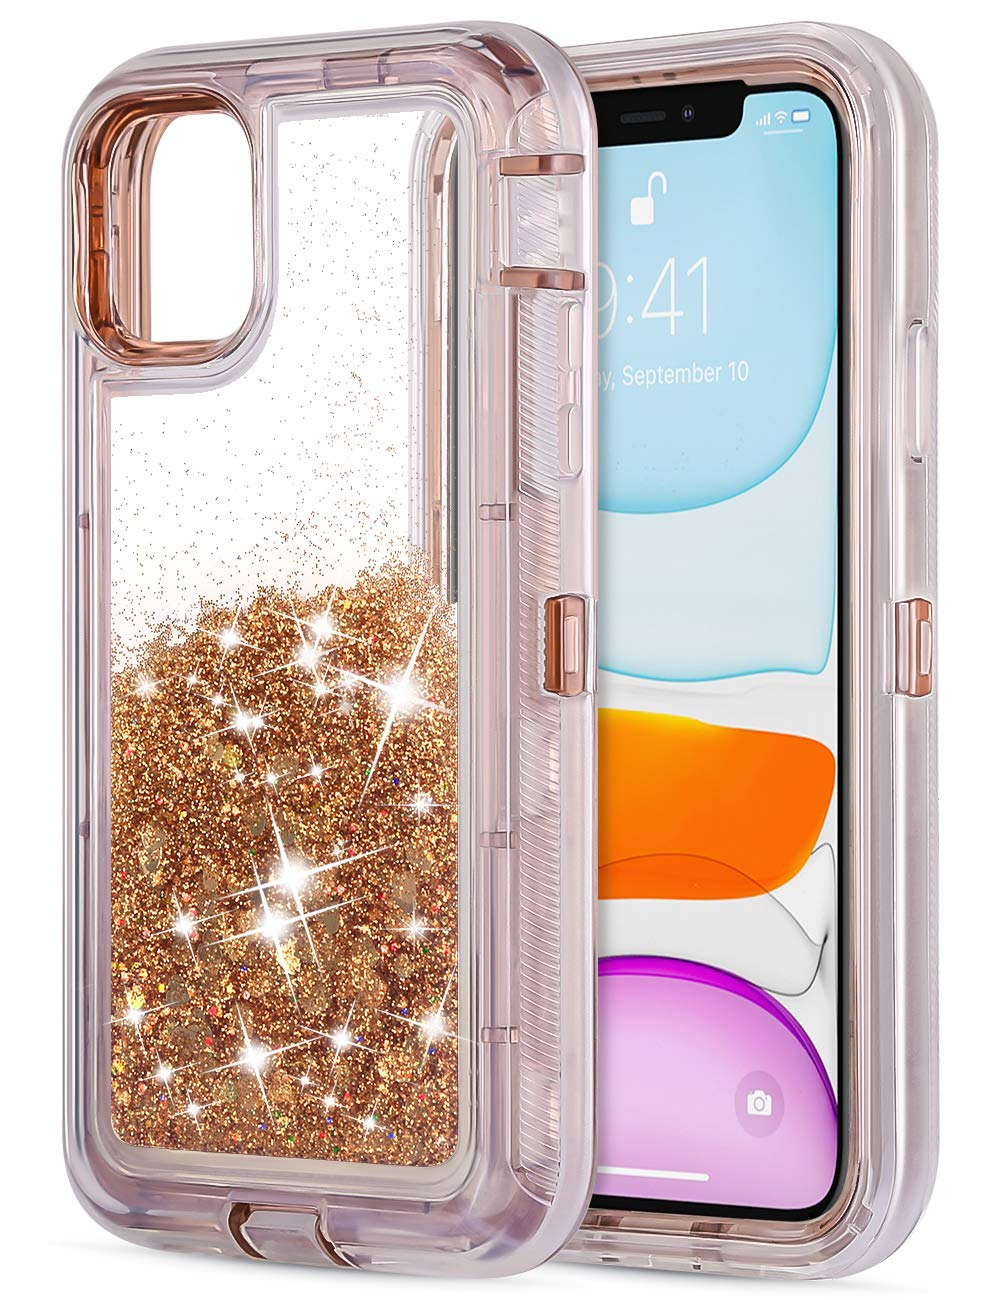 Jiunai iPhone 11 Case, iPhone 11 Glitter Case Quicksand Luxury Flowing Liquid Cute Fashion Protective Armor Shockproof Non Slip Bumper Dual Layer Hybrid Cover Case for iPhone 11 6.1 inches 2019 Gold